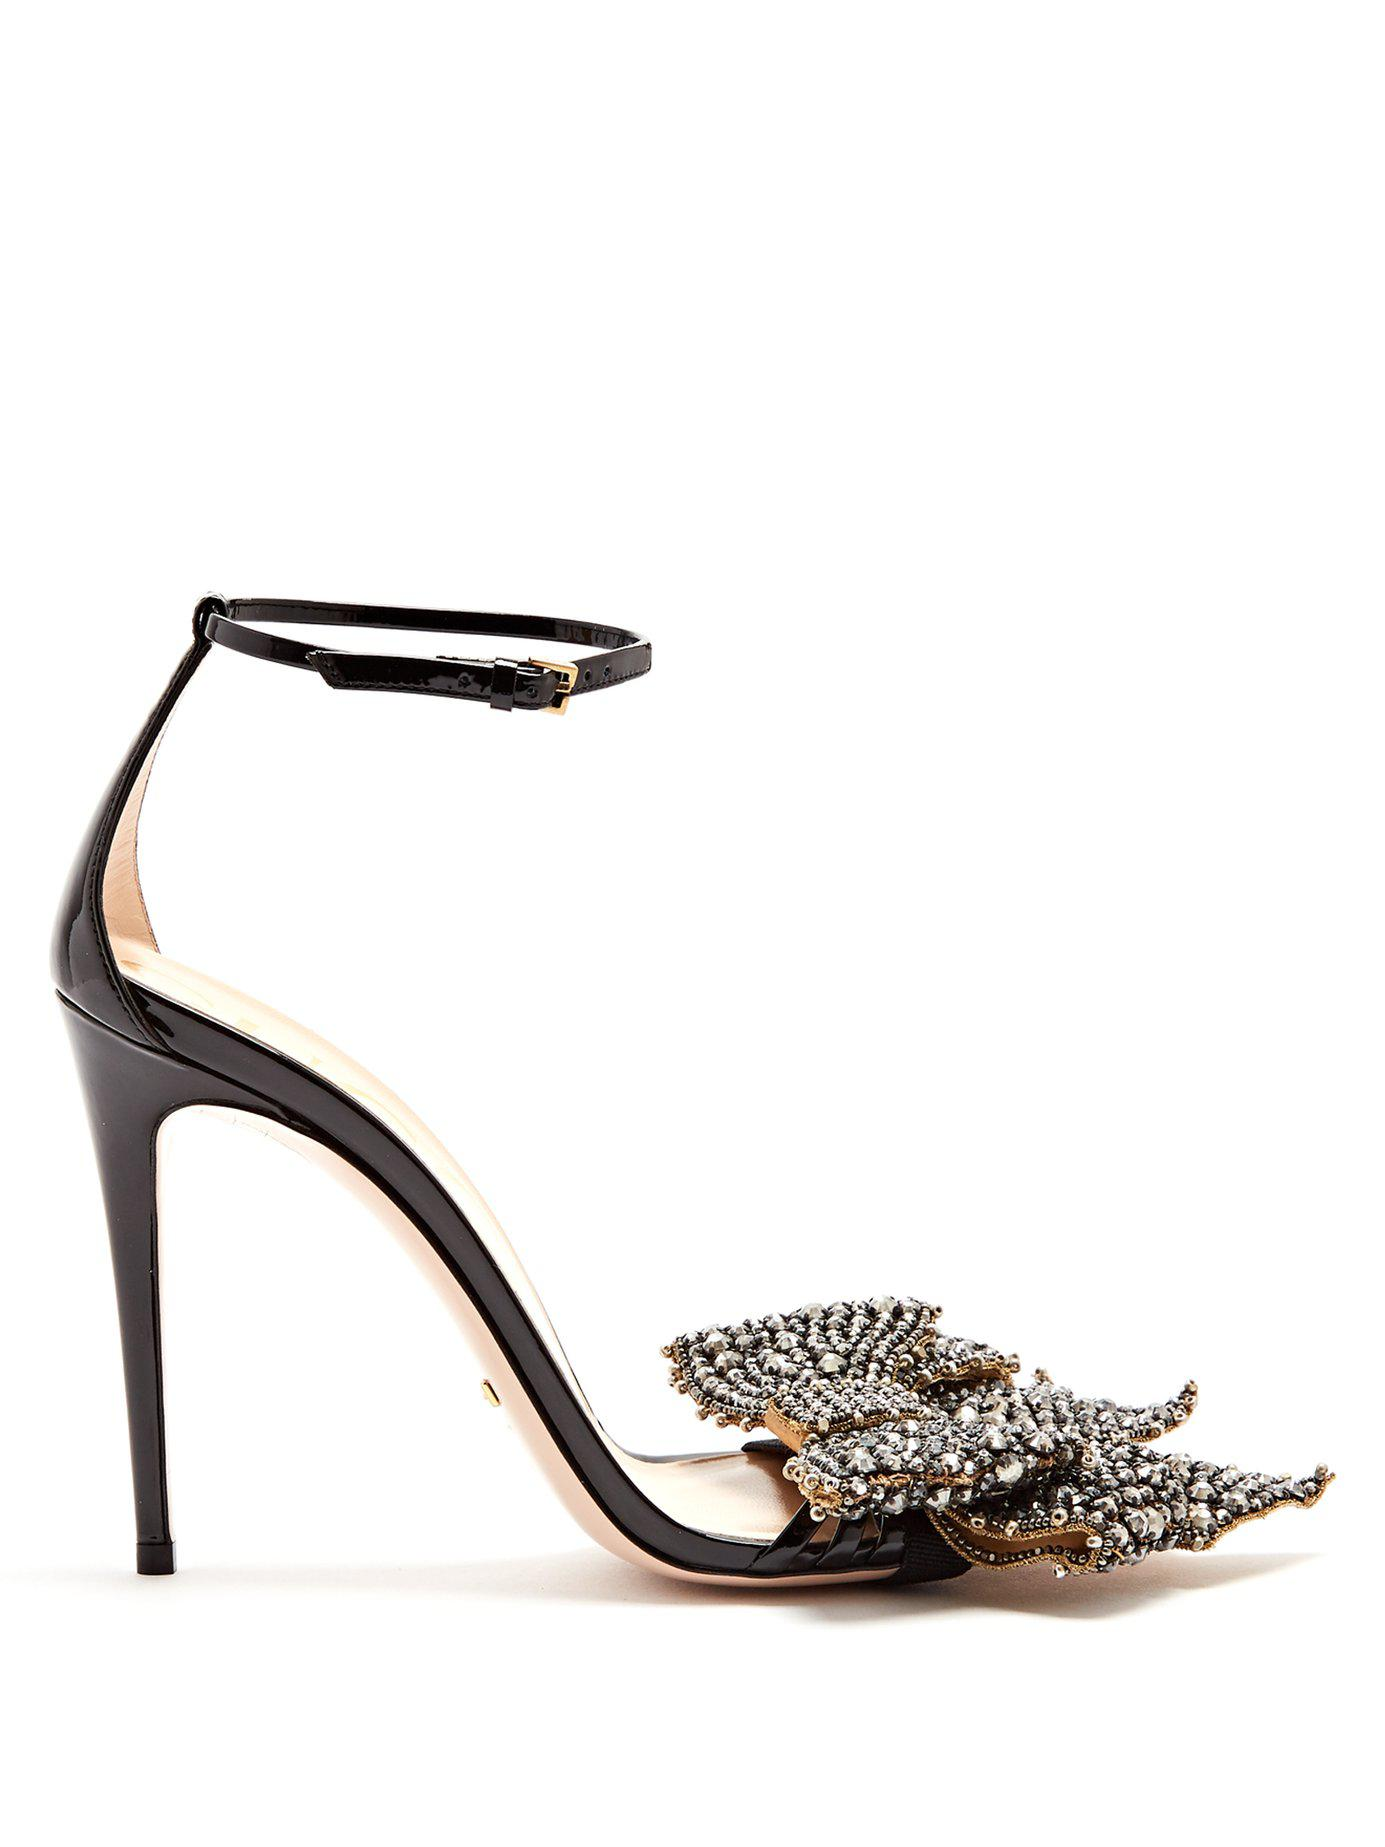 1e336a2a3f98d Gucci Crystal-embellished Detachable-bow Leather Sandals in Black - Lyst